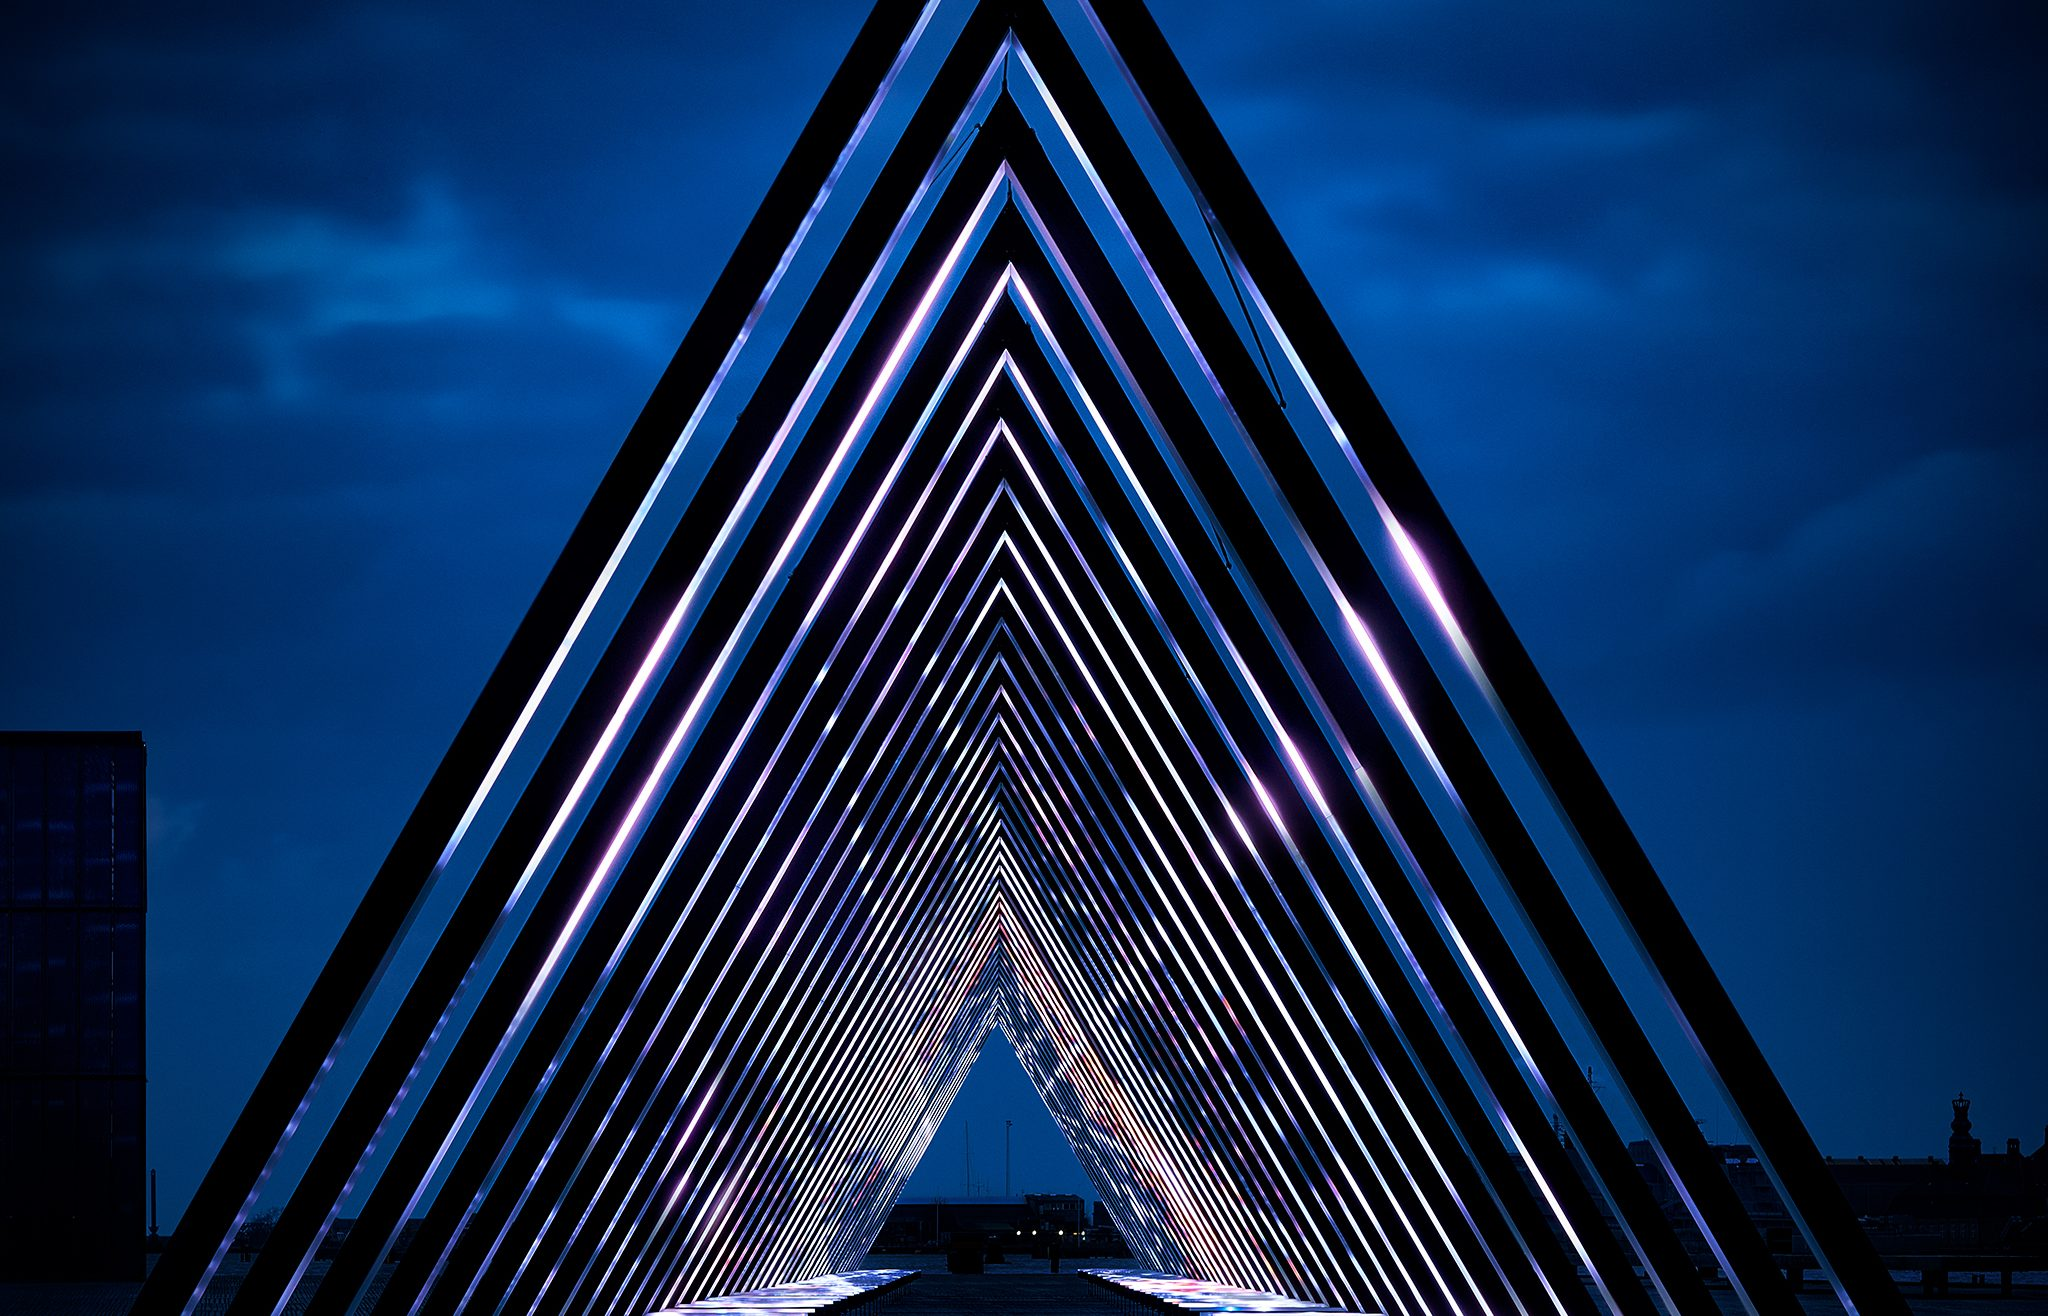 80 meter long interactive light and sound artwork created by Obscura Vertigo, displayed at Ofelia Plads in Copenhagen between February 4th and 26th 2017